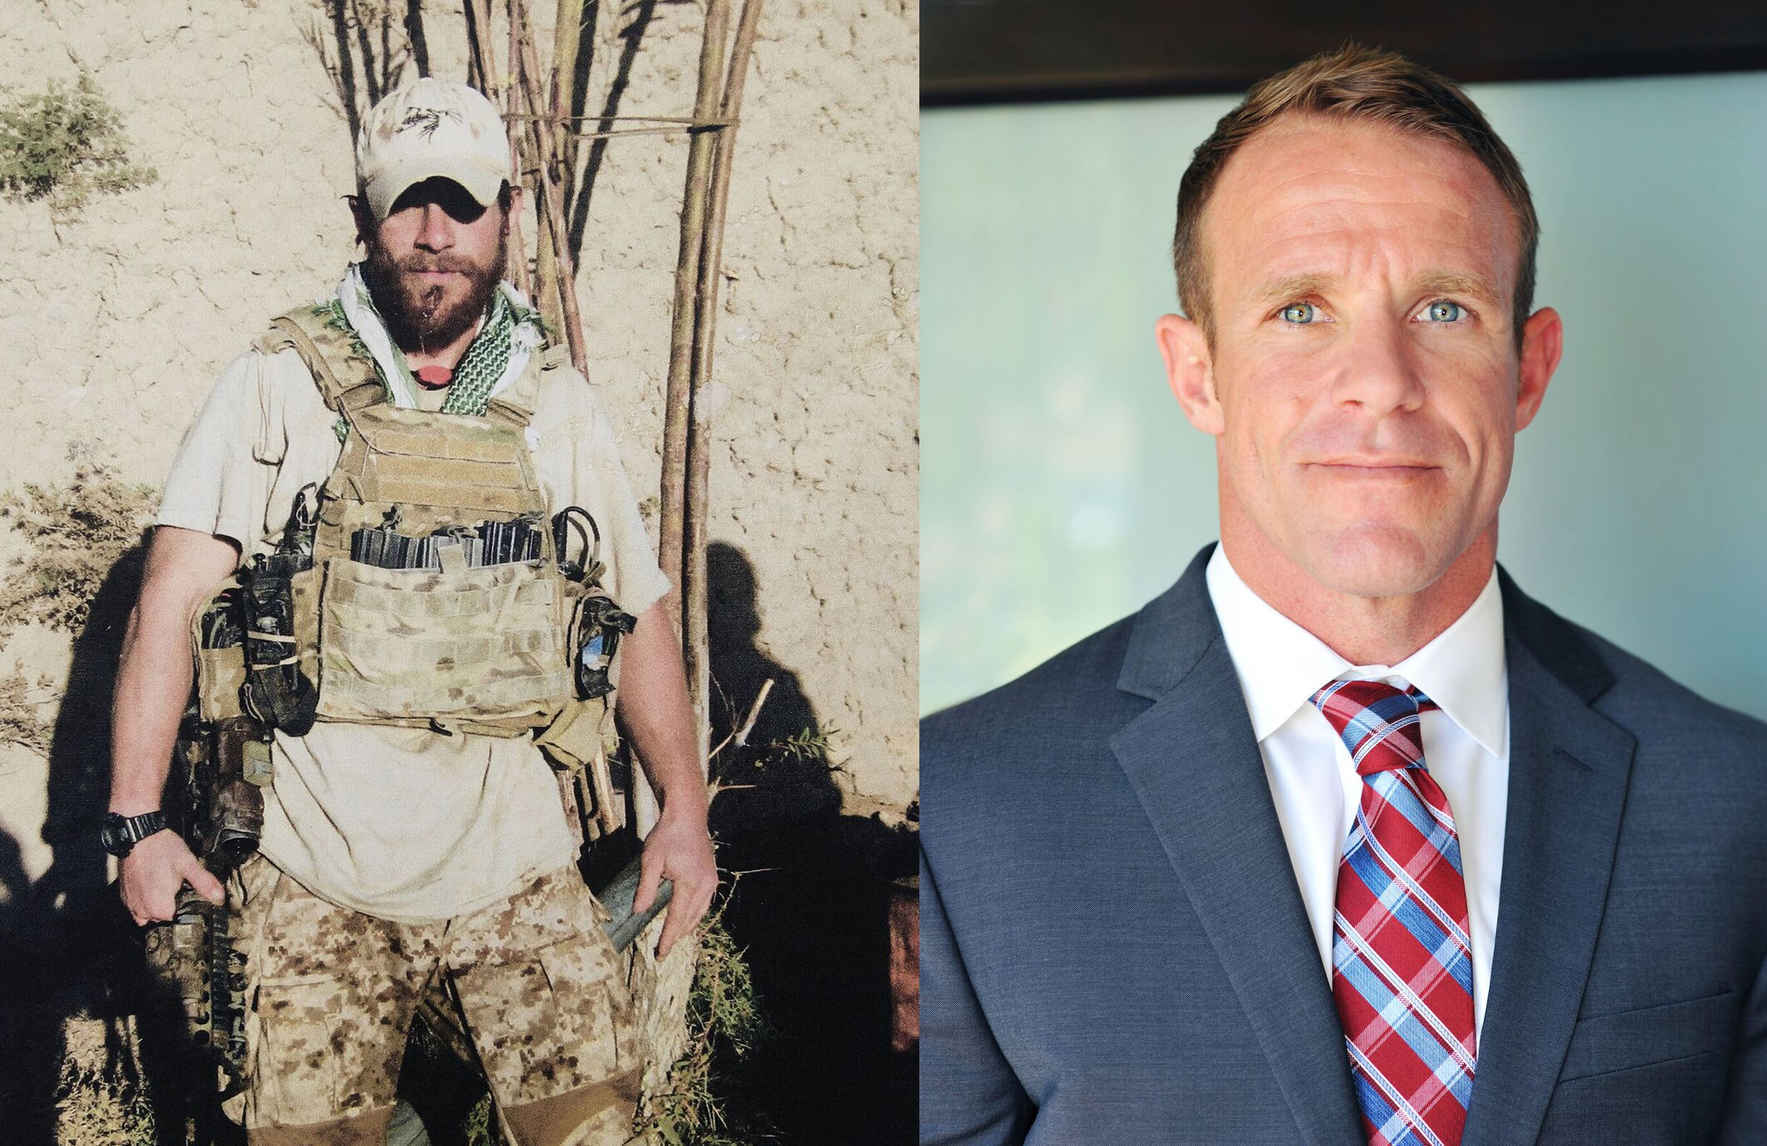 Donate Now to support Navy SEAL Chief Gallagher and his family, fighting for Justice! image